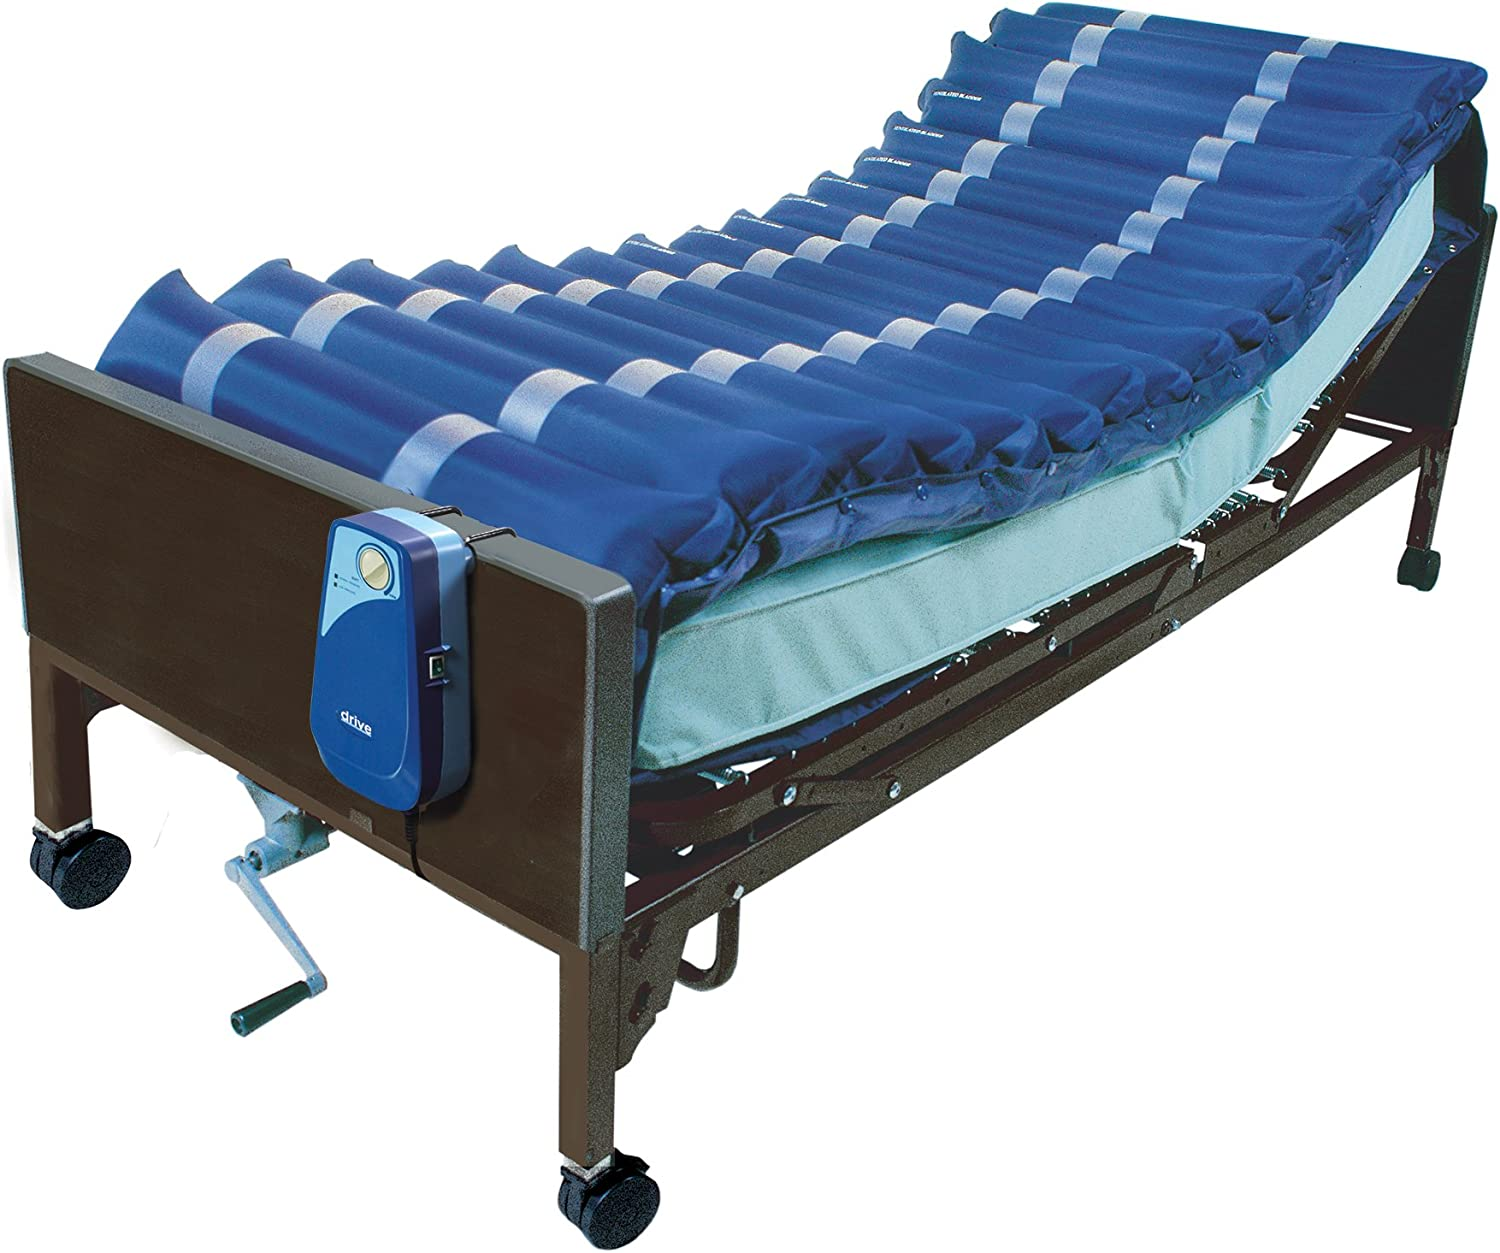 """Drive Medical 5"""" Med Aire Low Air Loss Mattress Overlay System with APP, Blue, 5"""": Health & Personal Care"""